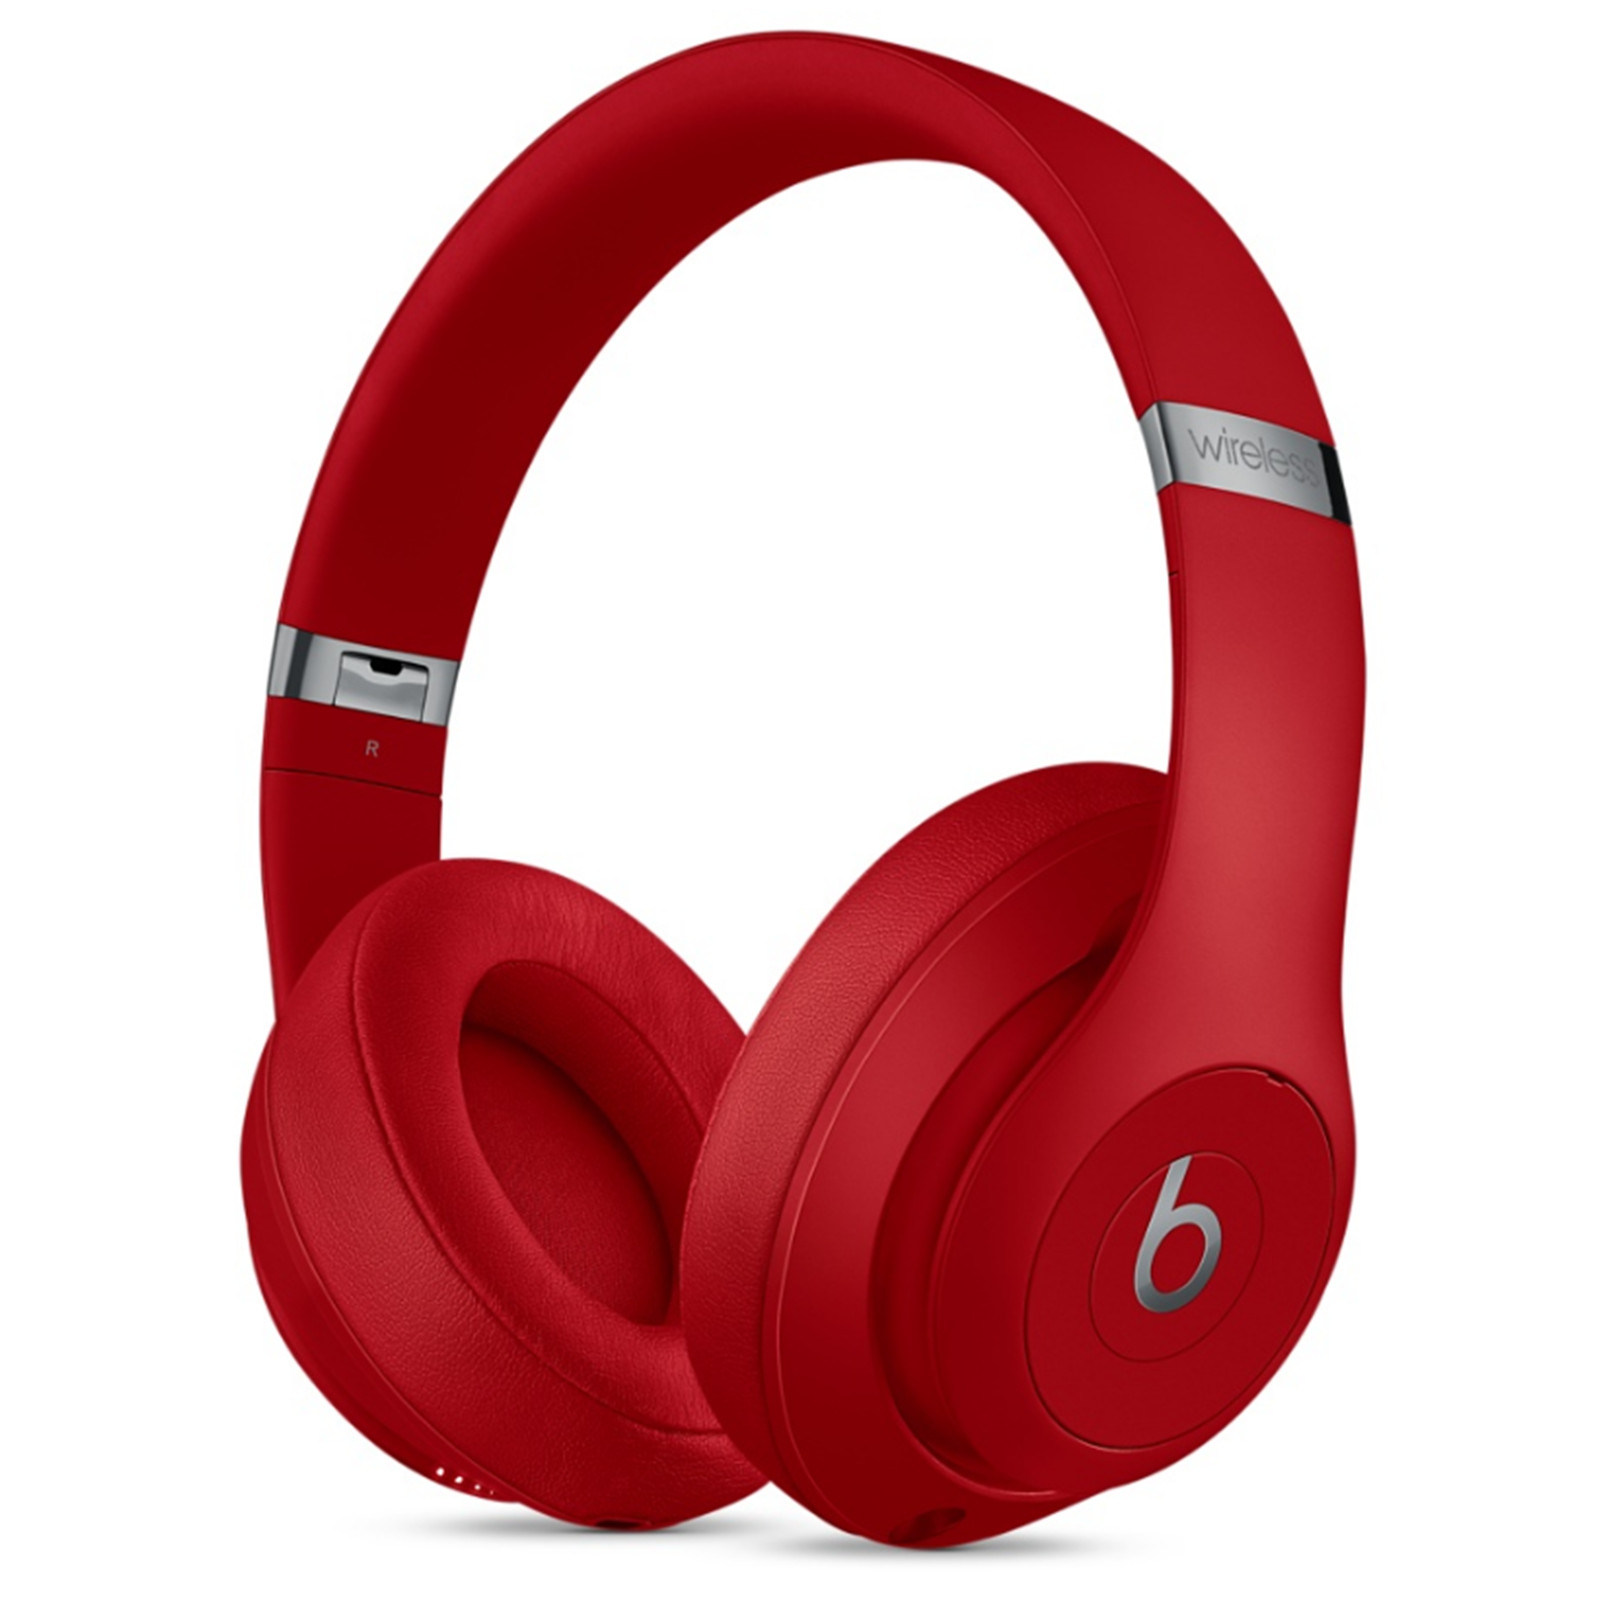 795721a55f2 Beats Studio3 Wireless Over-Ear Headphones - Red - with Pure Active Noise  Cancellation